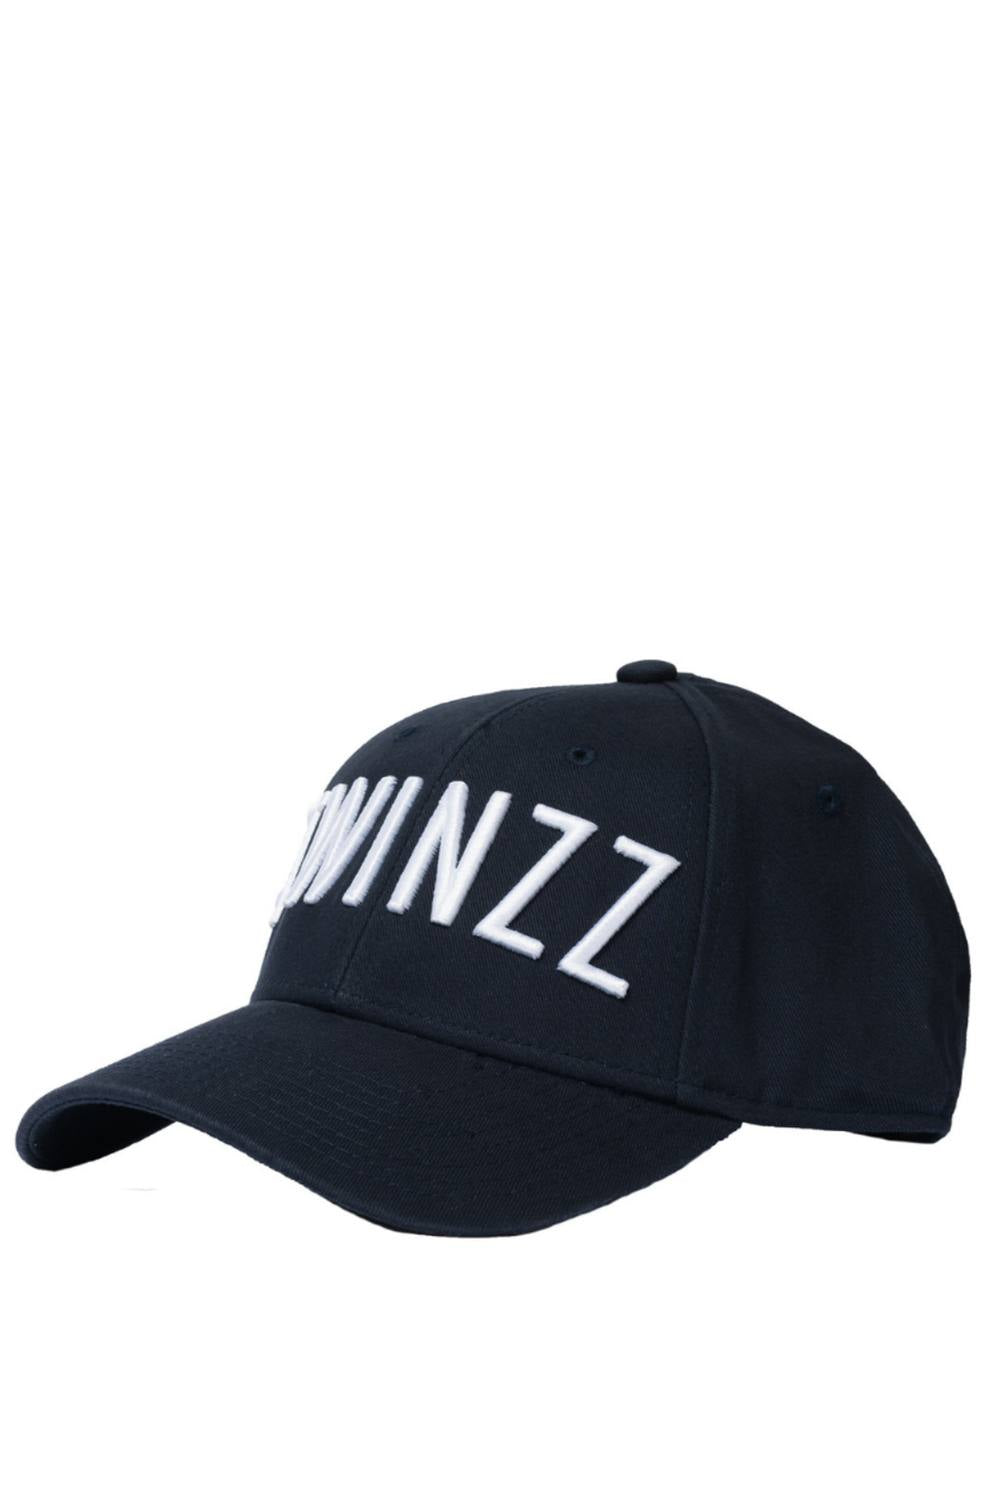 Twinzz 3D Harbour Baseball Cap - Navy/White